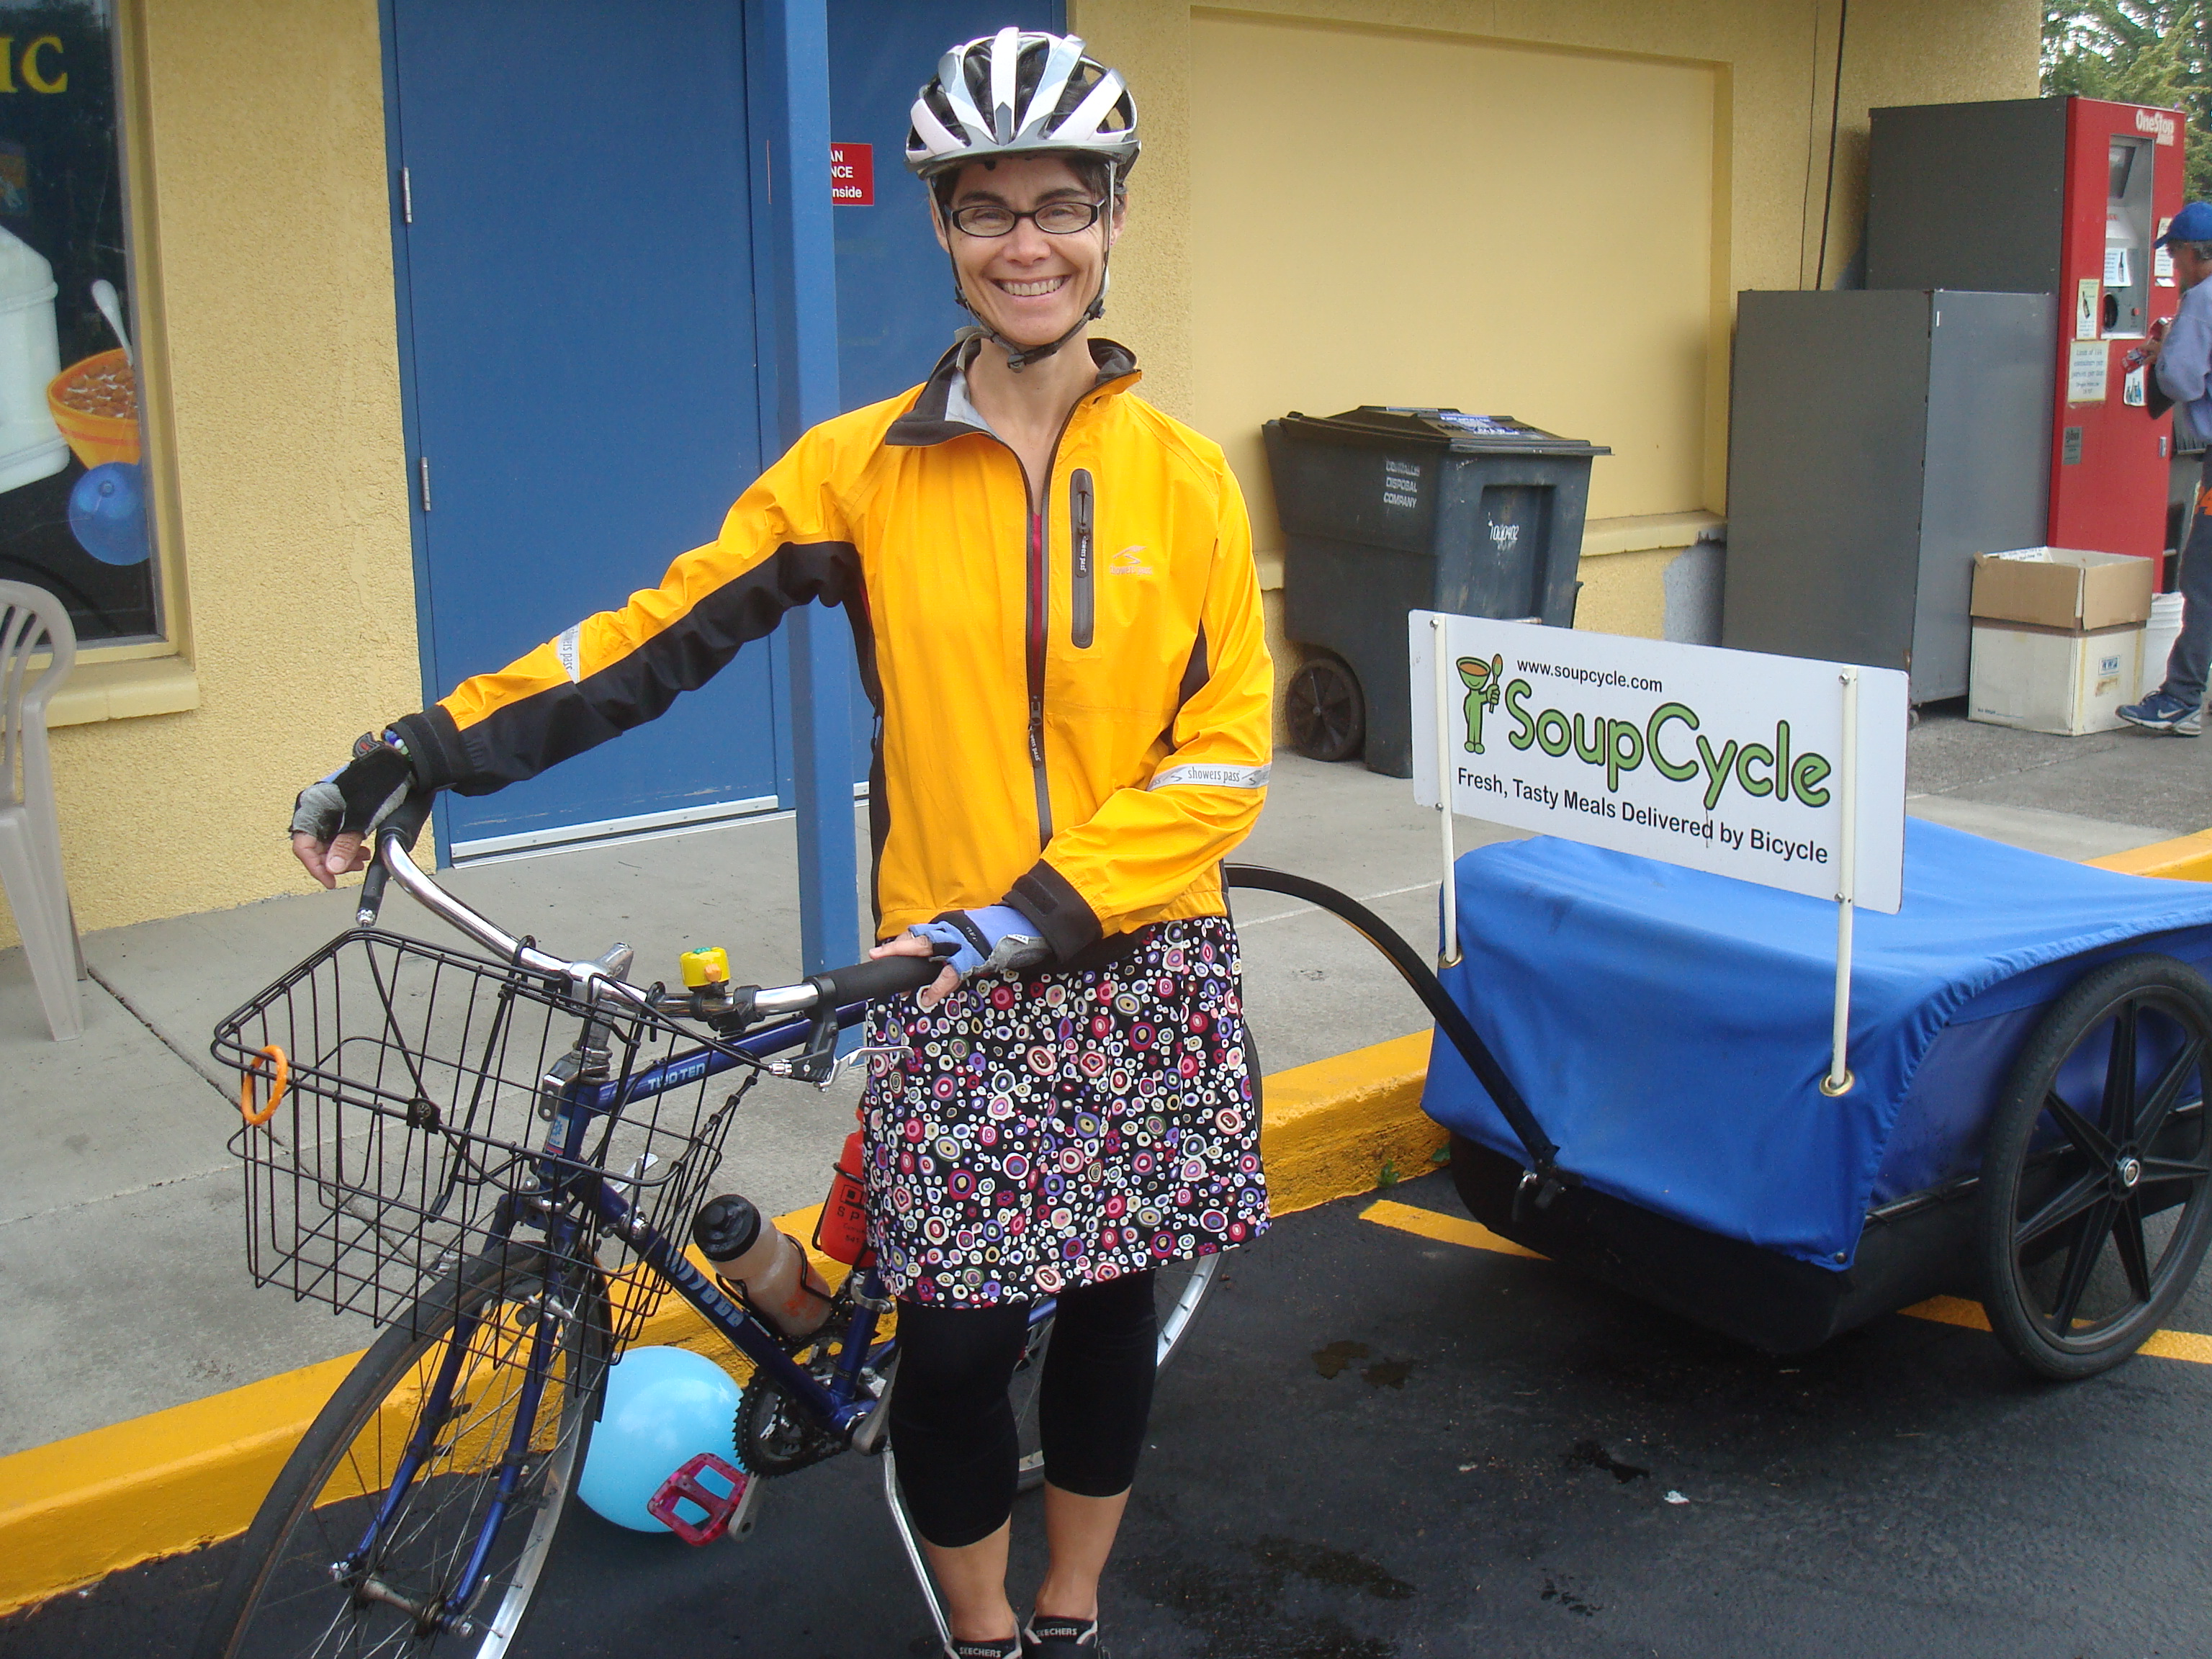 Soup Cycle's Kim Thackray on her Corvallis delivery route (by Laura McCandlish).